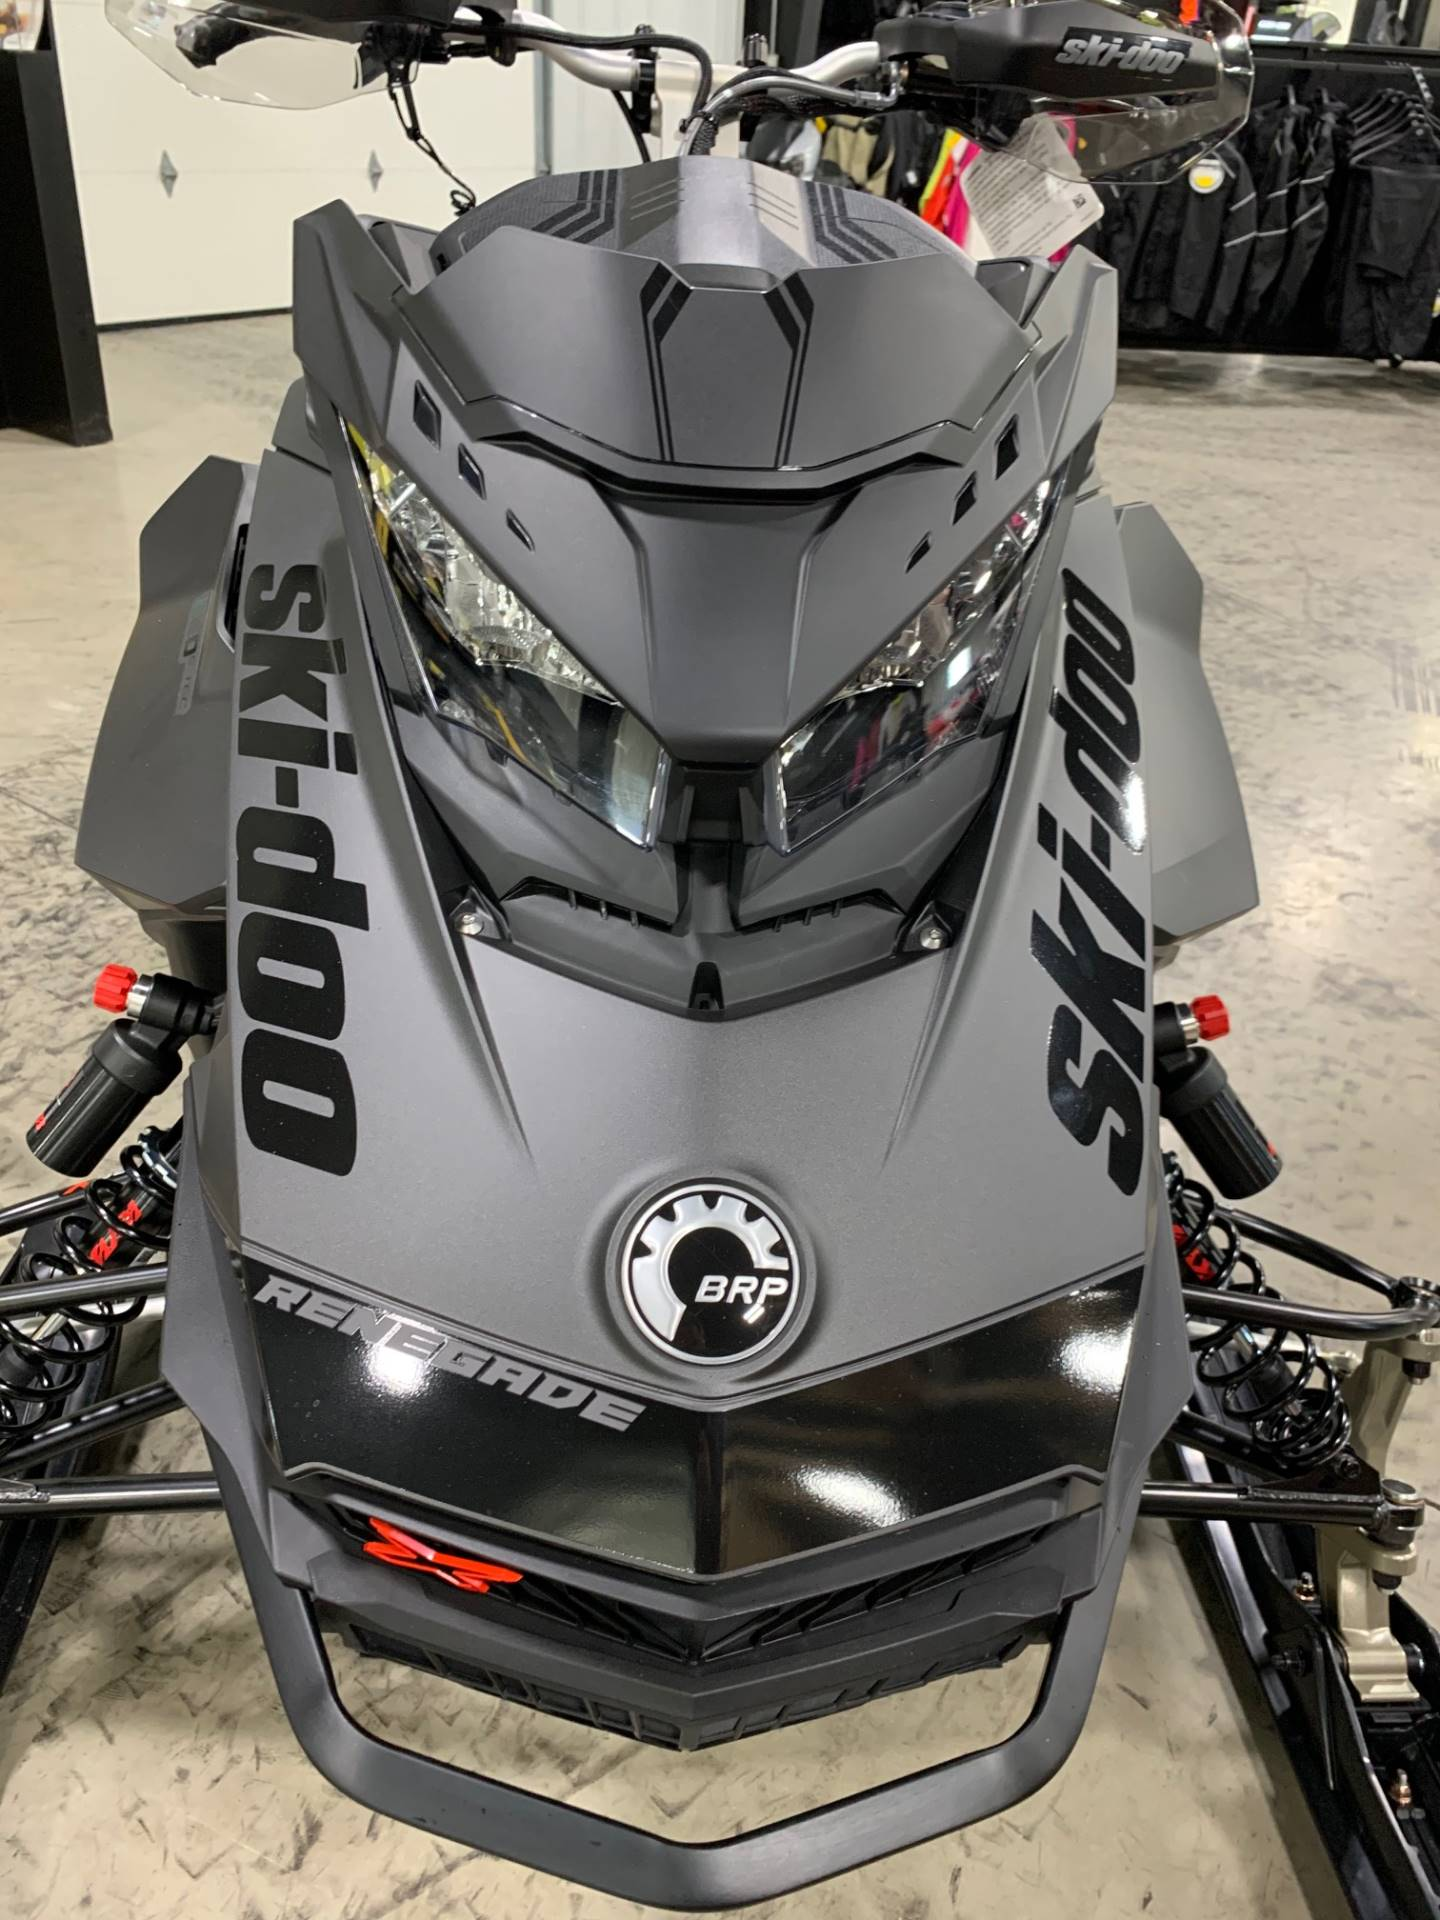 2020 Ski-Doo RENEGADE® X-RS® WITH rMOTION™ X AND RAS™ X (LATE SEASON RELEASE) in Huron, Ohio - Photo 4